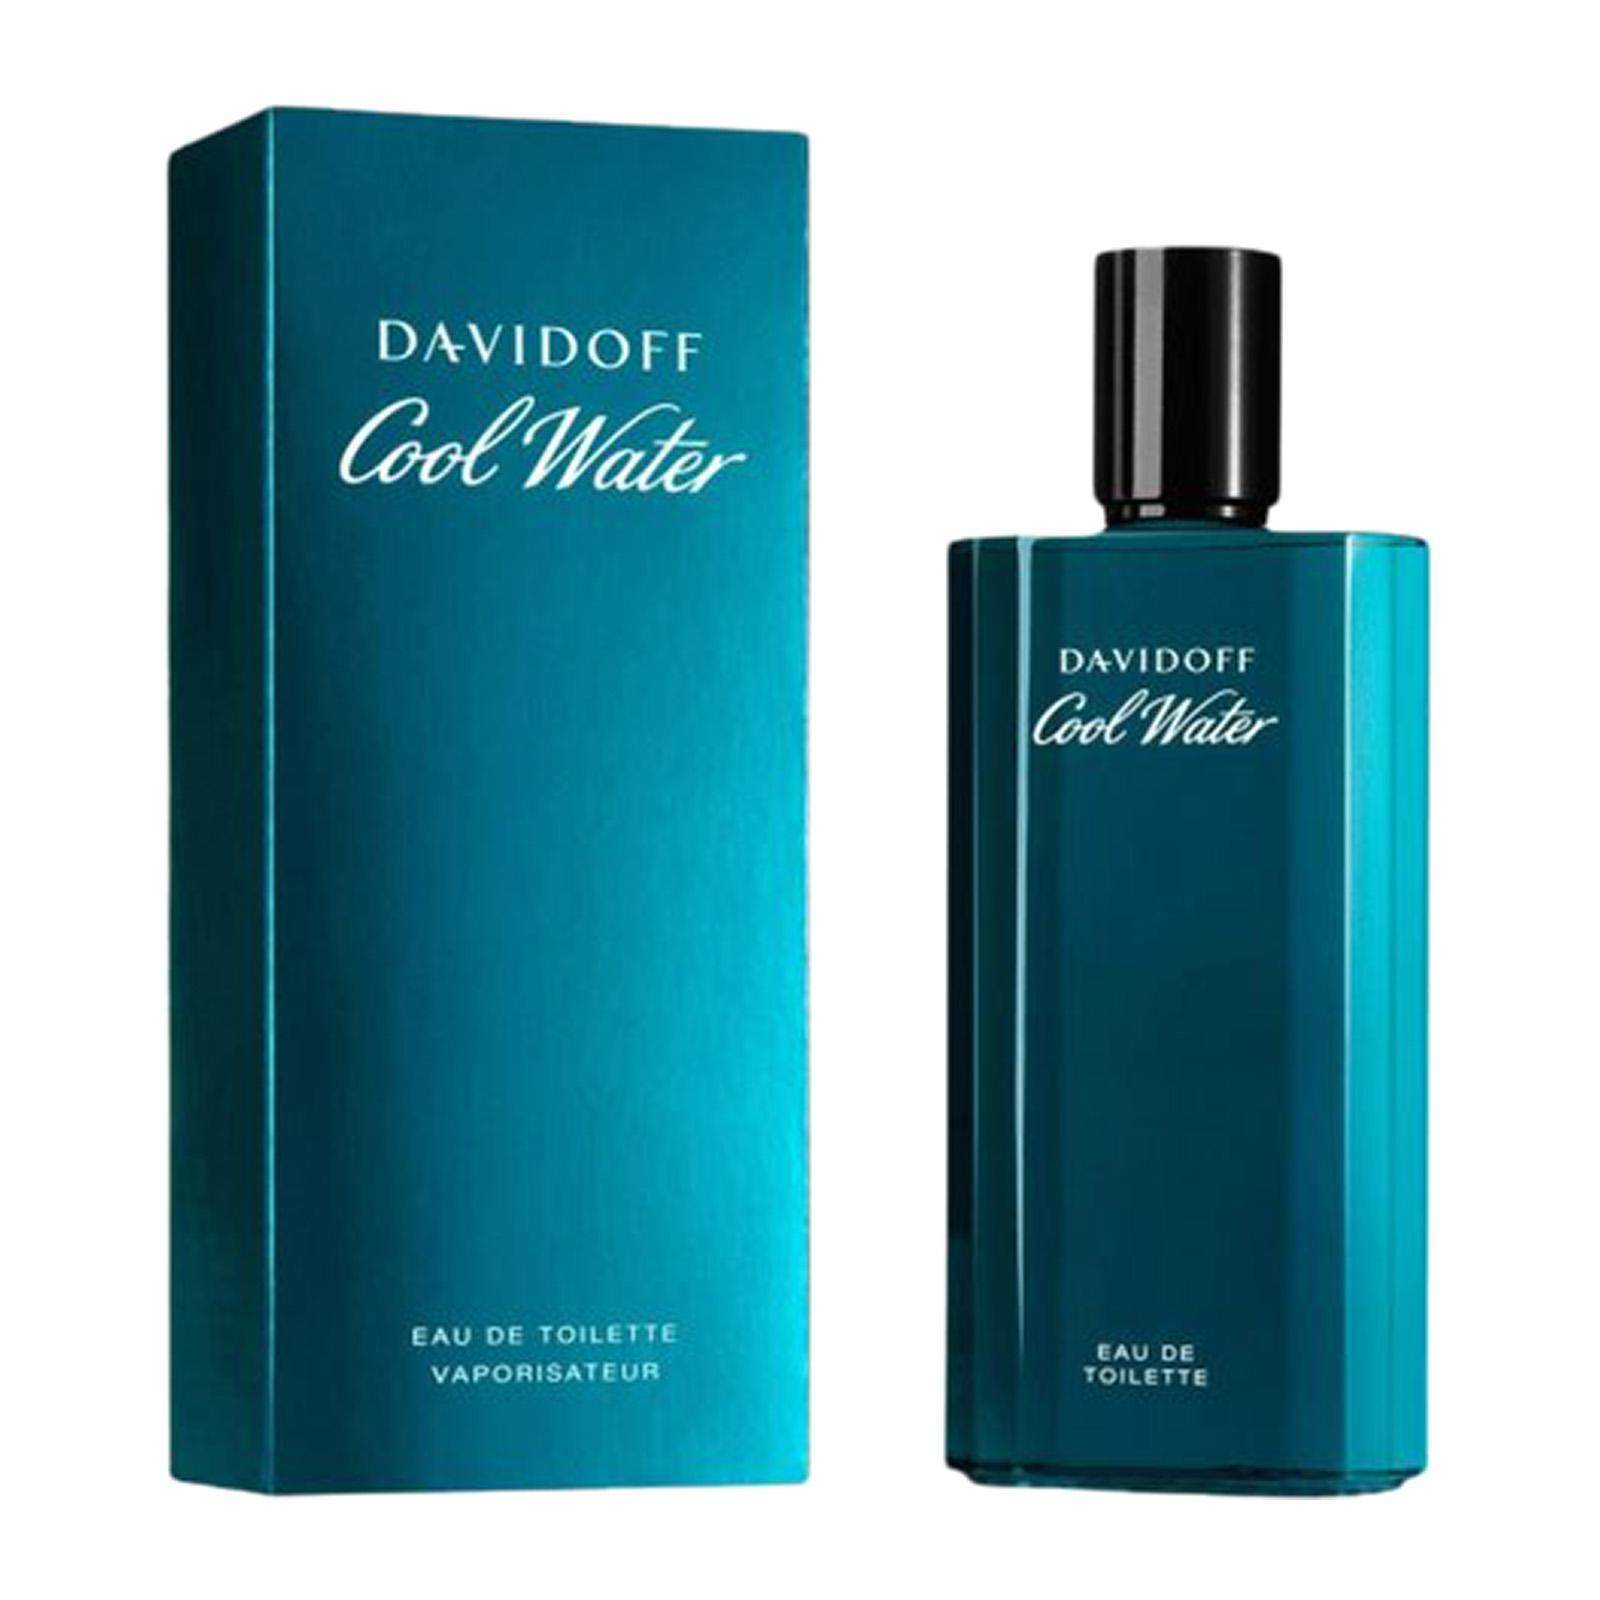 Davidoff Cool Water For Men Eau De Toilette Perfume Fragrance Spray - By BEAULUXLAB